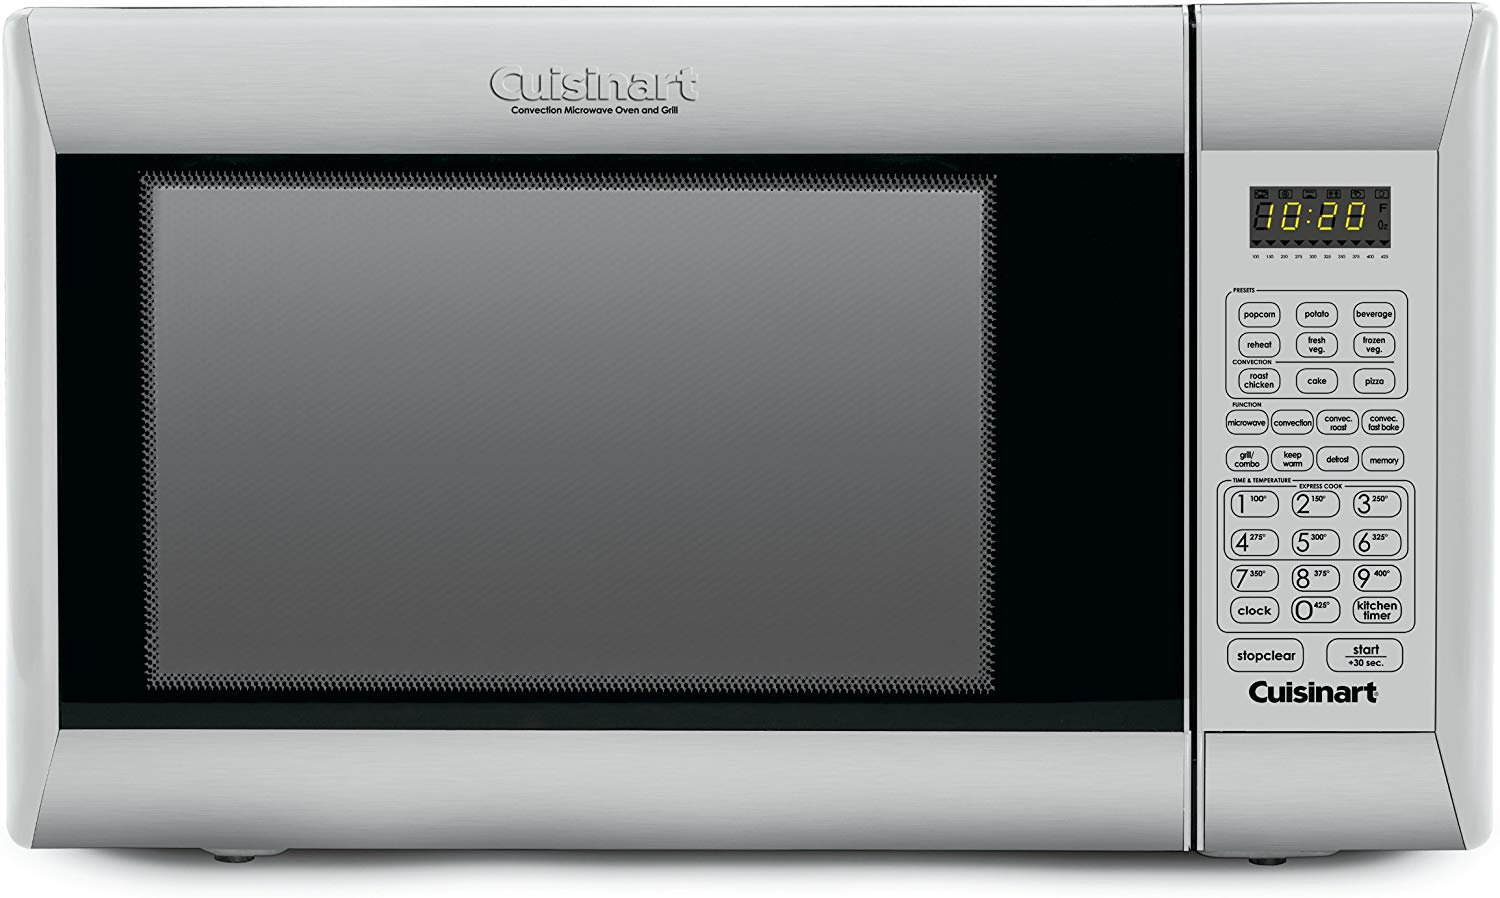 Airstream Convection Microwave Oven Stainless Steel By Cuisinart - 690605-03